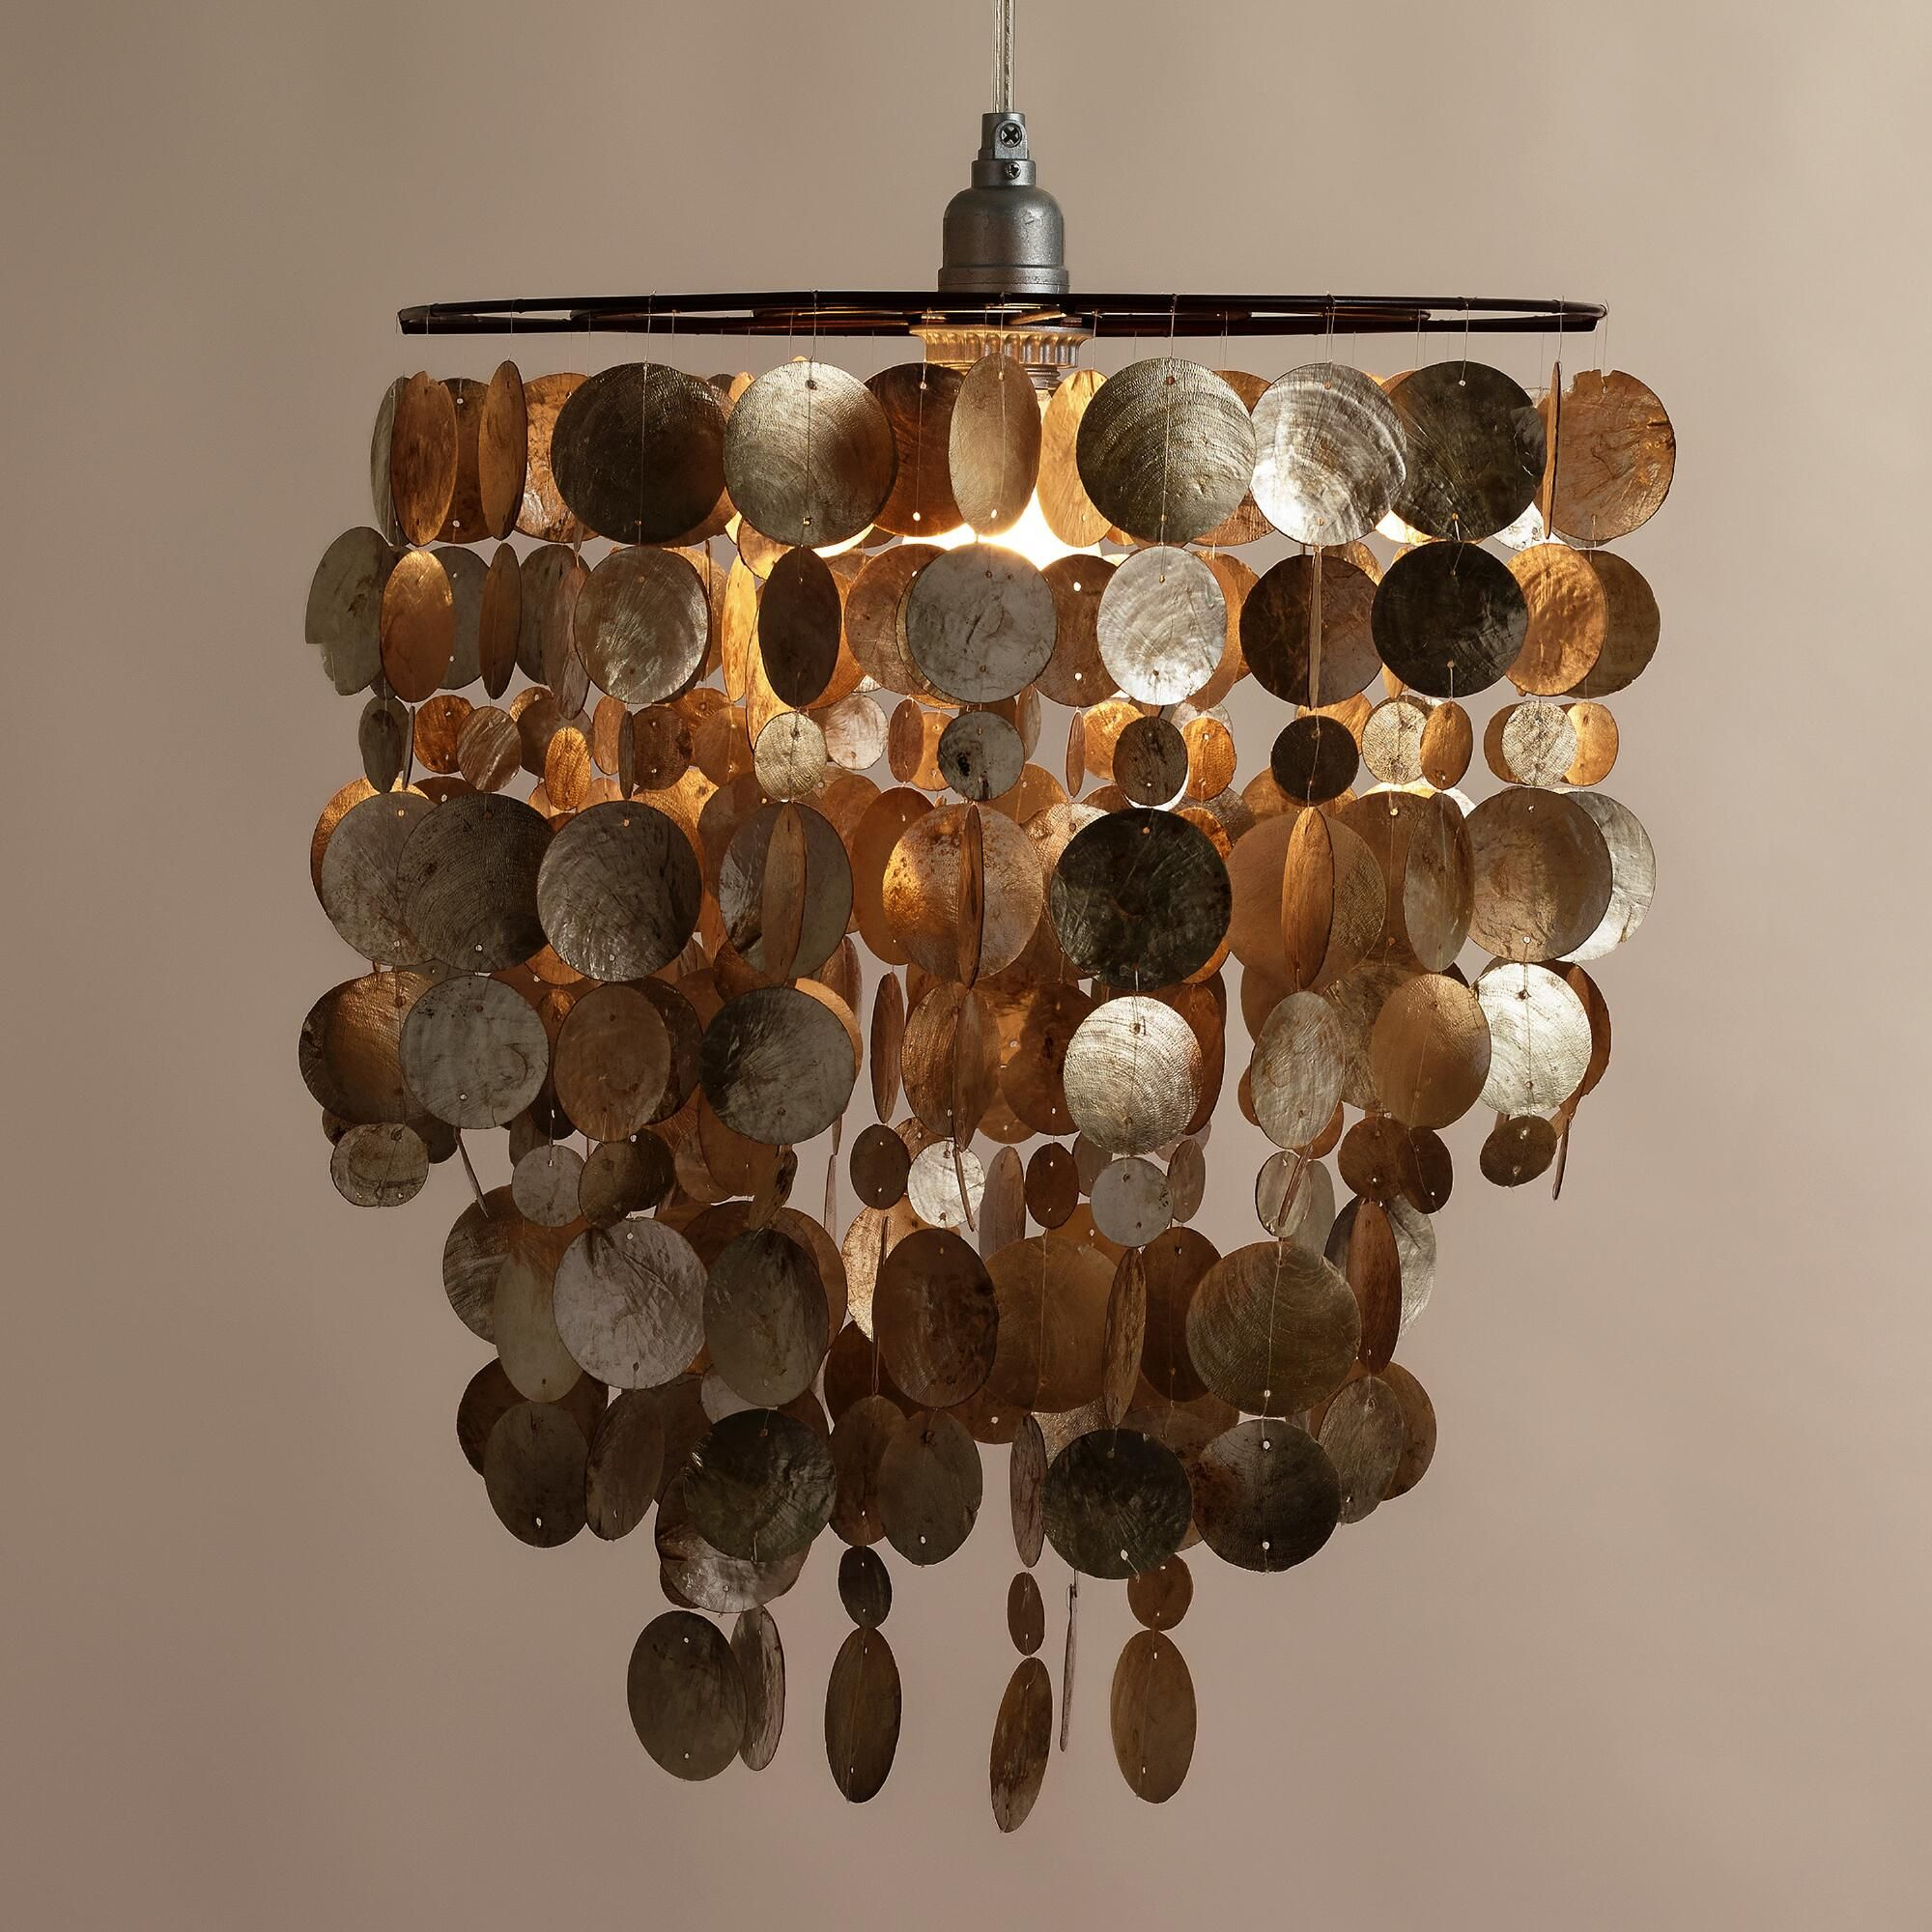 The dramatic ring of softly iridescent shells on our Capiz Hanging